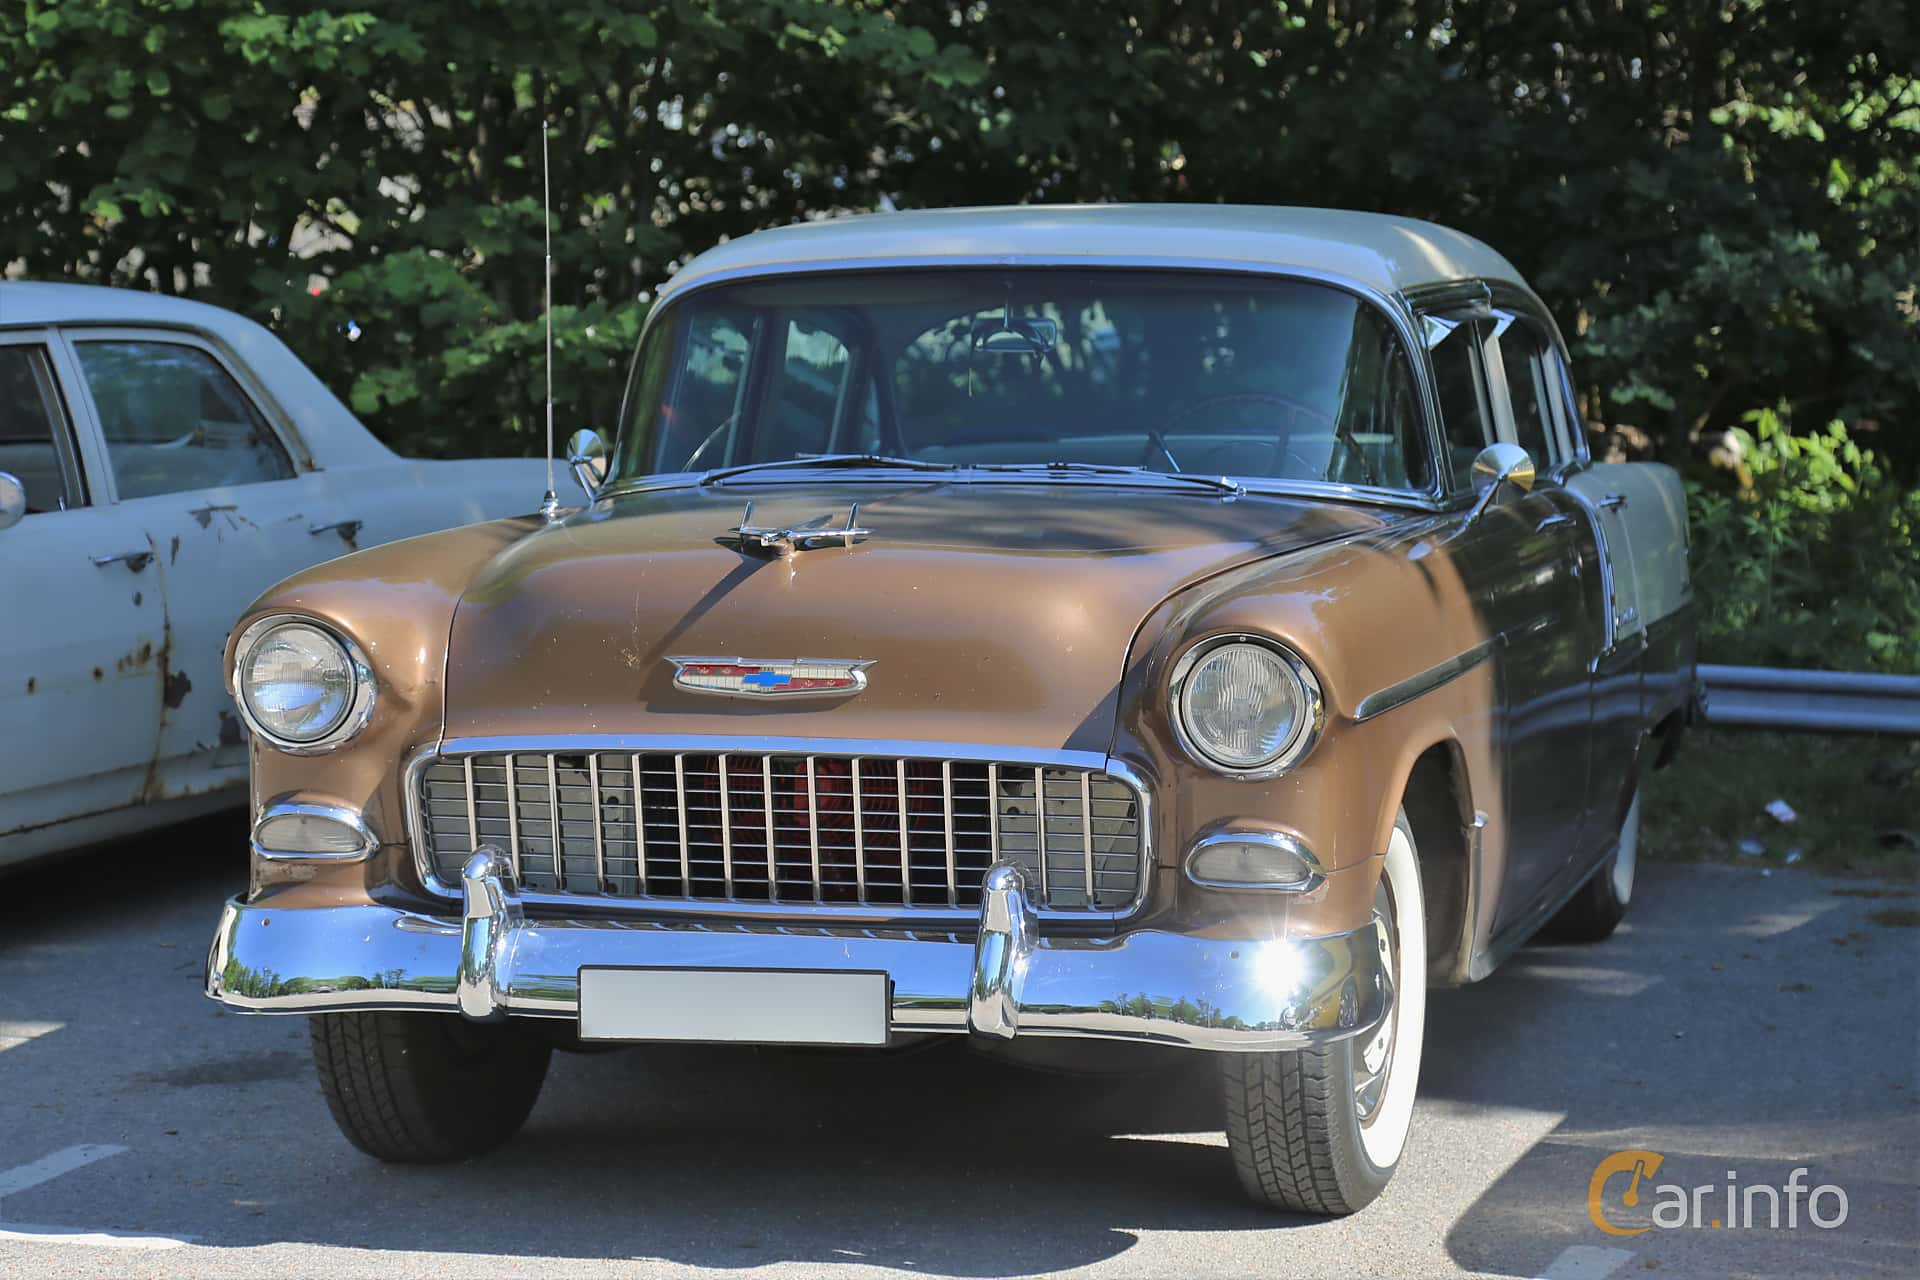 5 Images Of Chevrolet Bel Air 4 Door Sedan 43 V8 Powerglide 165hp 1955 Front Side 165ps